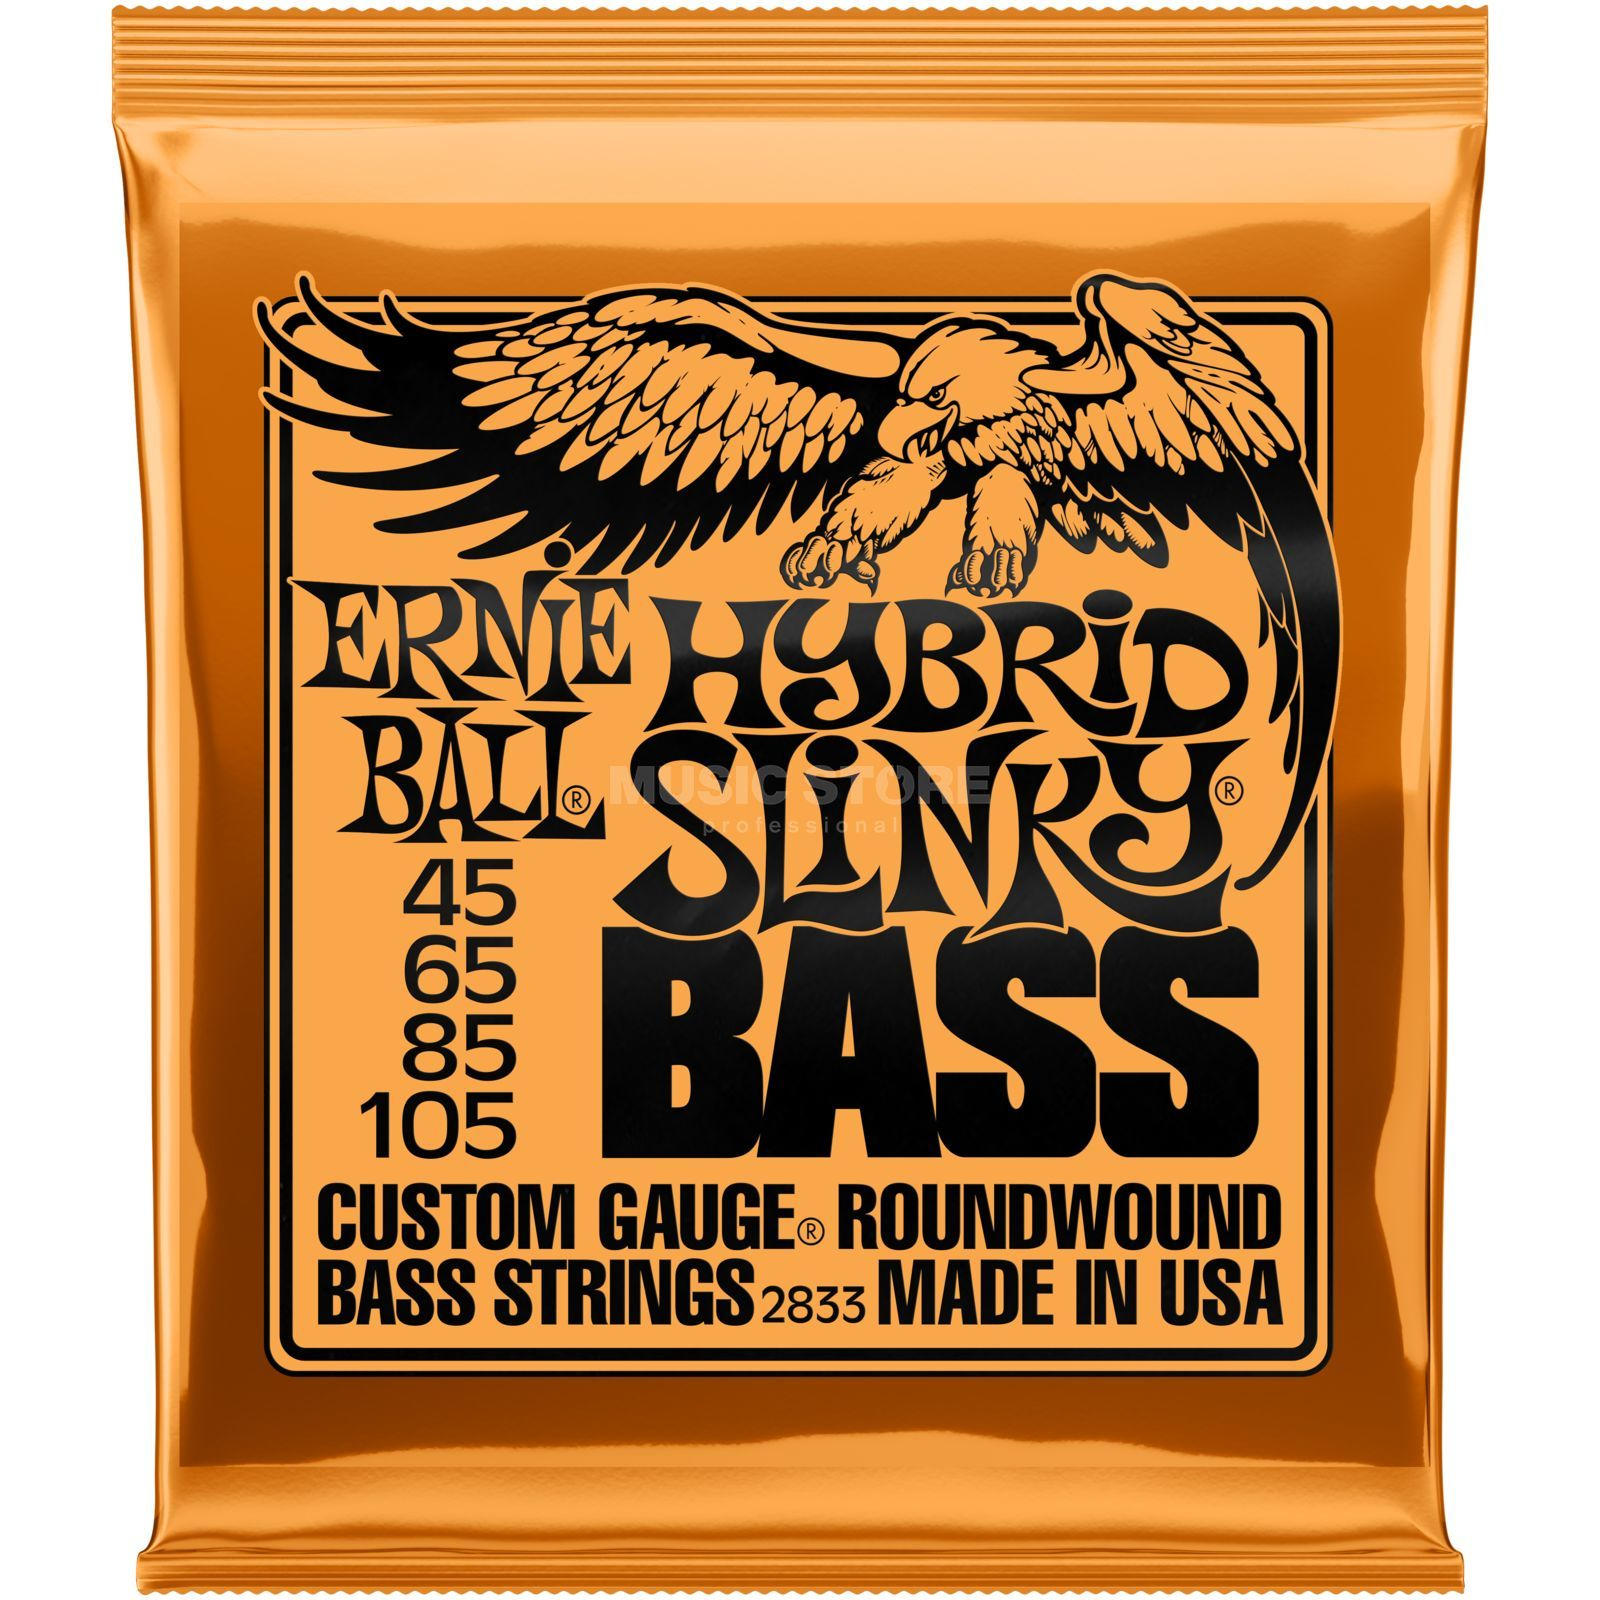 Ernie Ball Bass Strings, 45-105,HybridS Roundwound Long Scale Imagem do produto